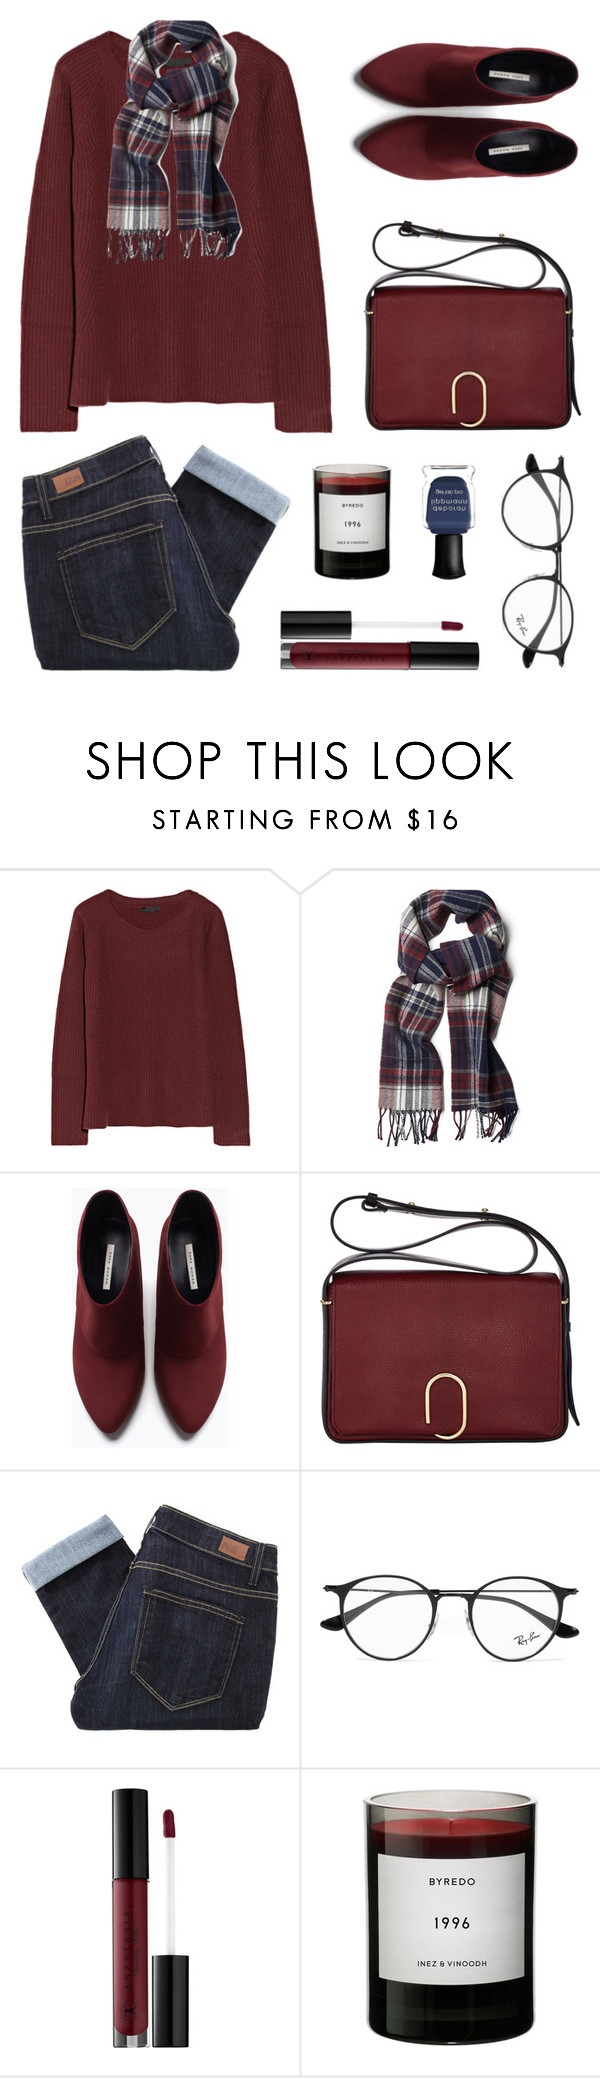 """''Raindrops on roses and whiskers on kittens...''"" by felytery ❤ liked on Polyvore featuring The Row, GANT, Zara, 3.1 Phillip Lim, Paige Denim, Ray-Ban, Anastasia Beverly Hills, Byredo and Deborah Lippmann"